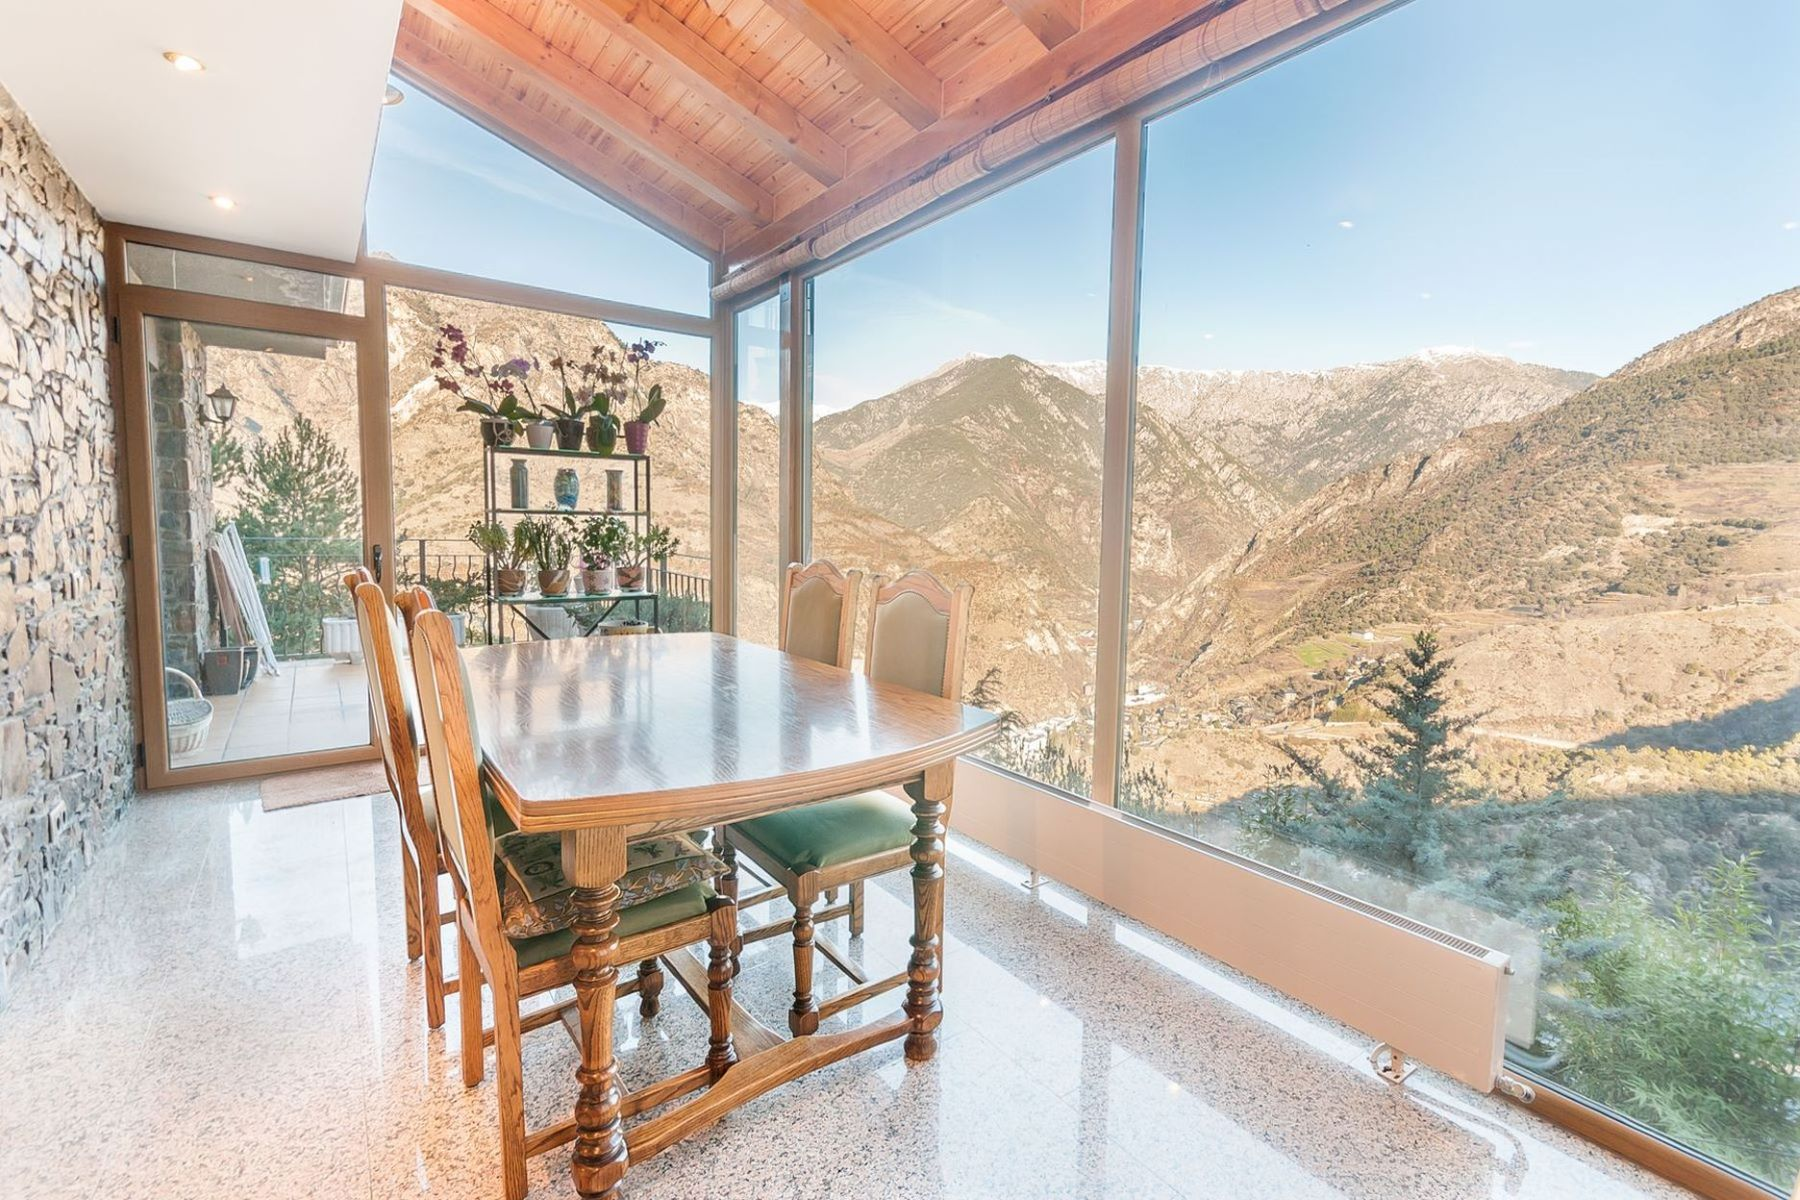 Single Family Home for Sale at Chalet-Tower for sale in Aixirivall Aixirivall, Sant Julia De Loria, AD600 Andorra